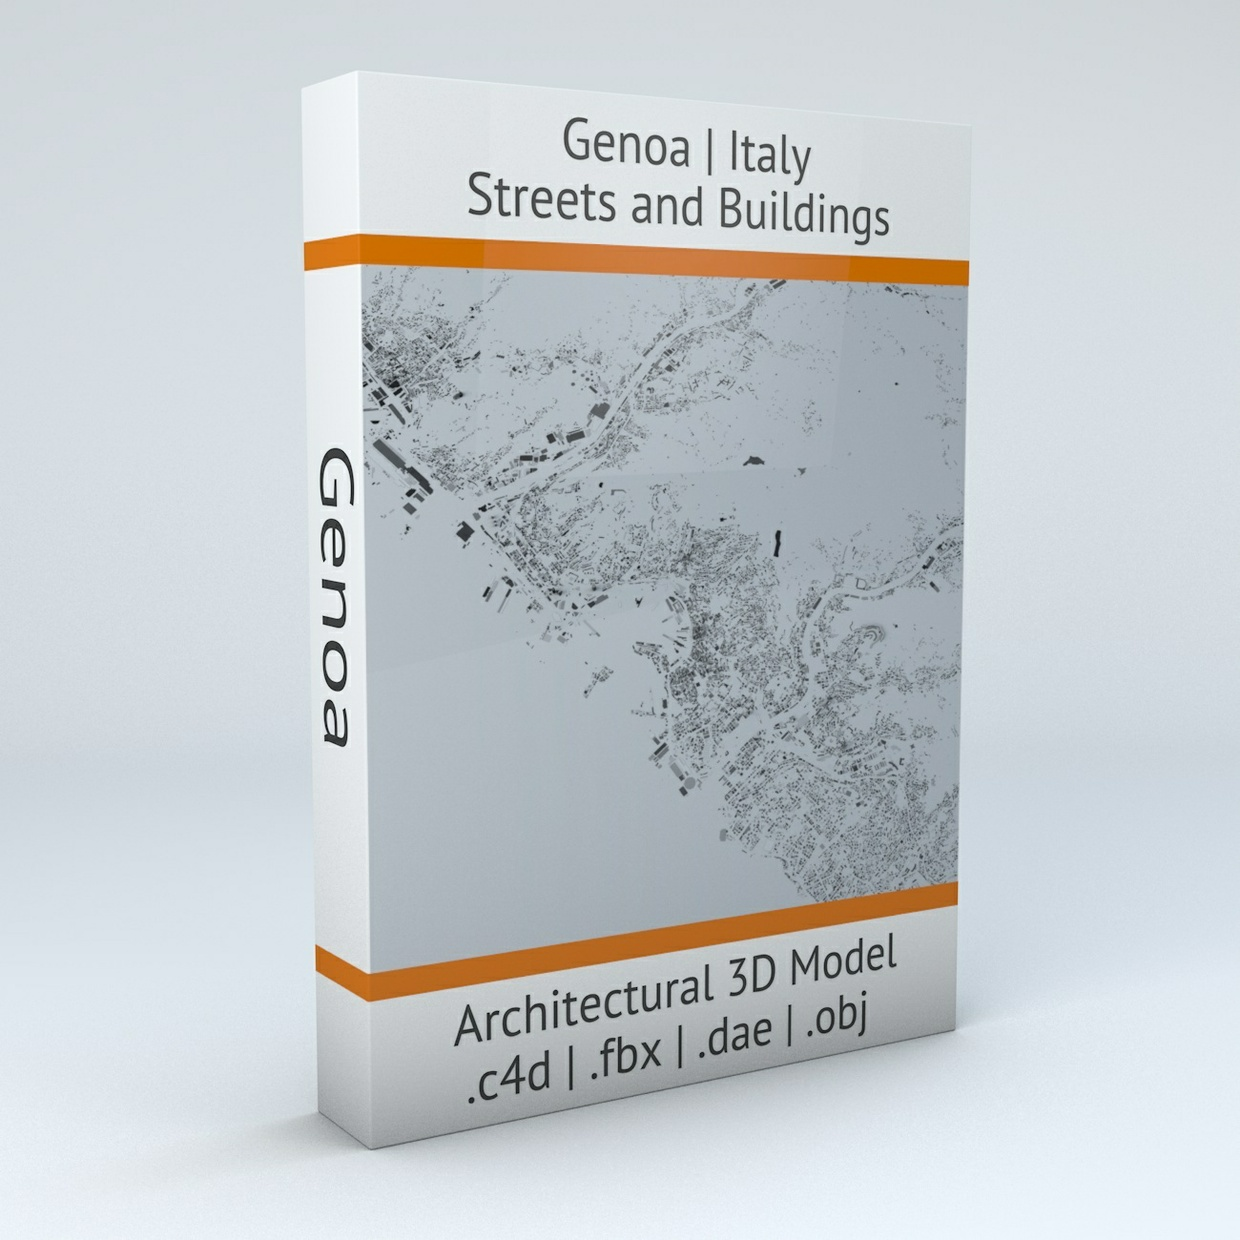 Genoa Streets and Buildings Architectural 3D Model